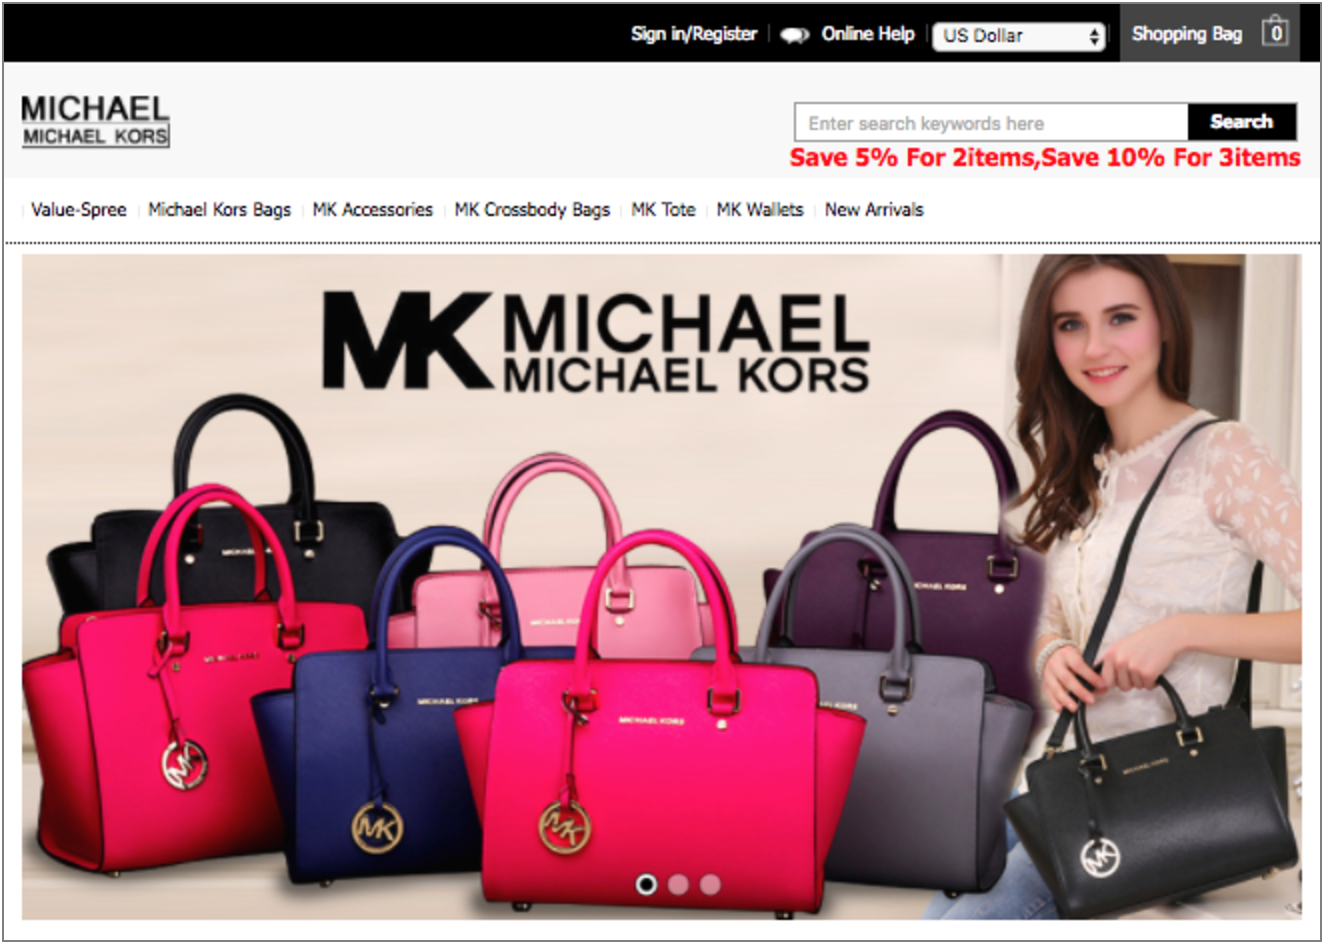 9d884edafe38 Fake Michael Kors shopping site ranks as the highest volume non-malware  attack of 2016